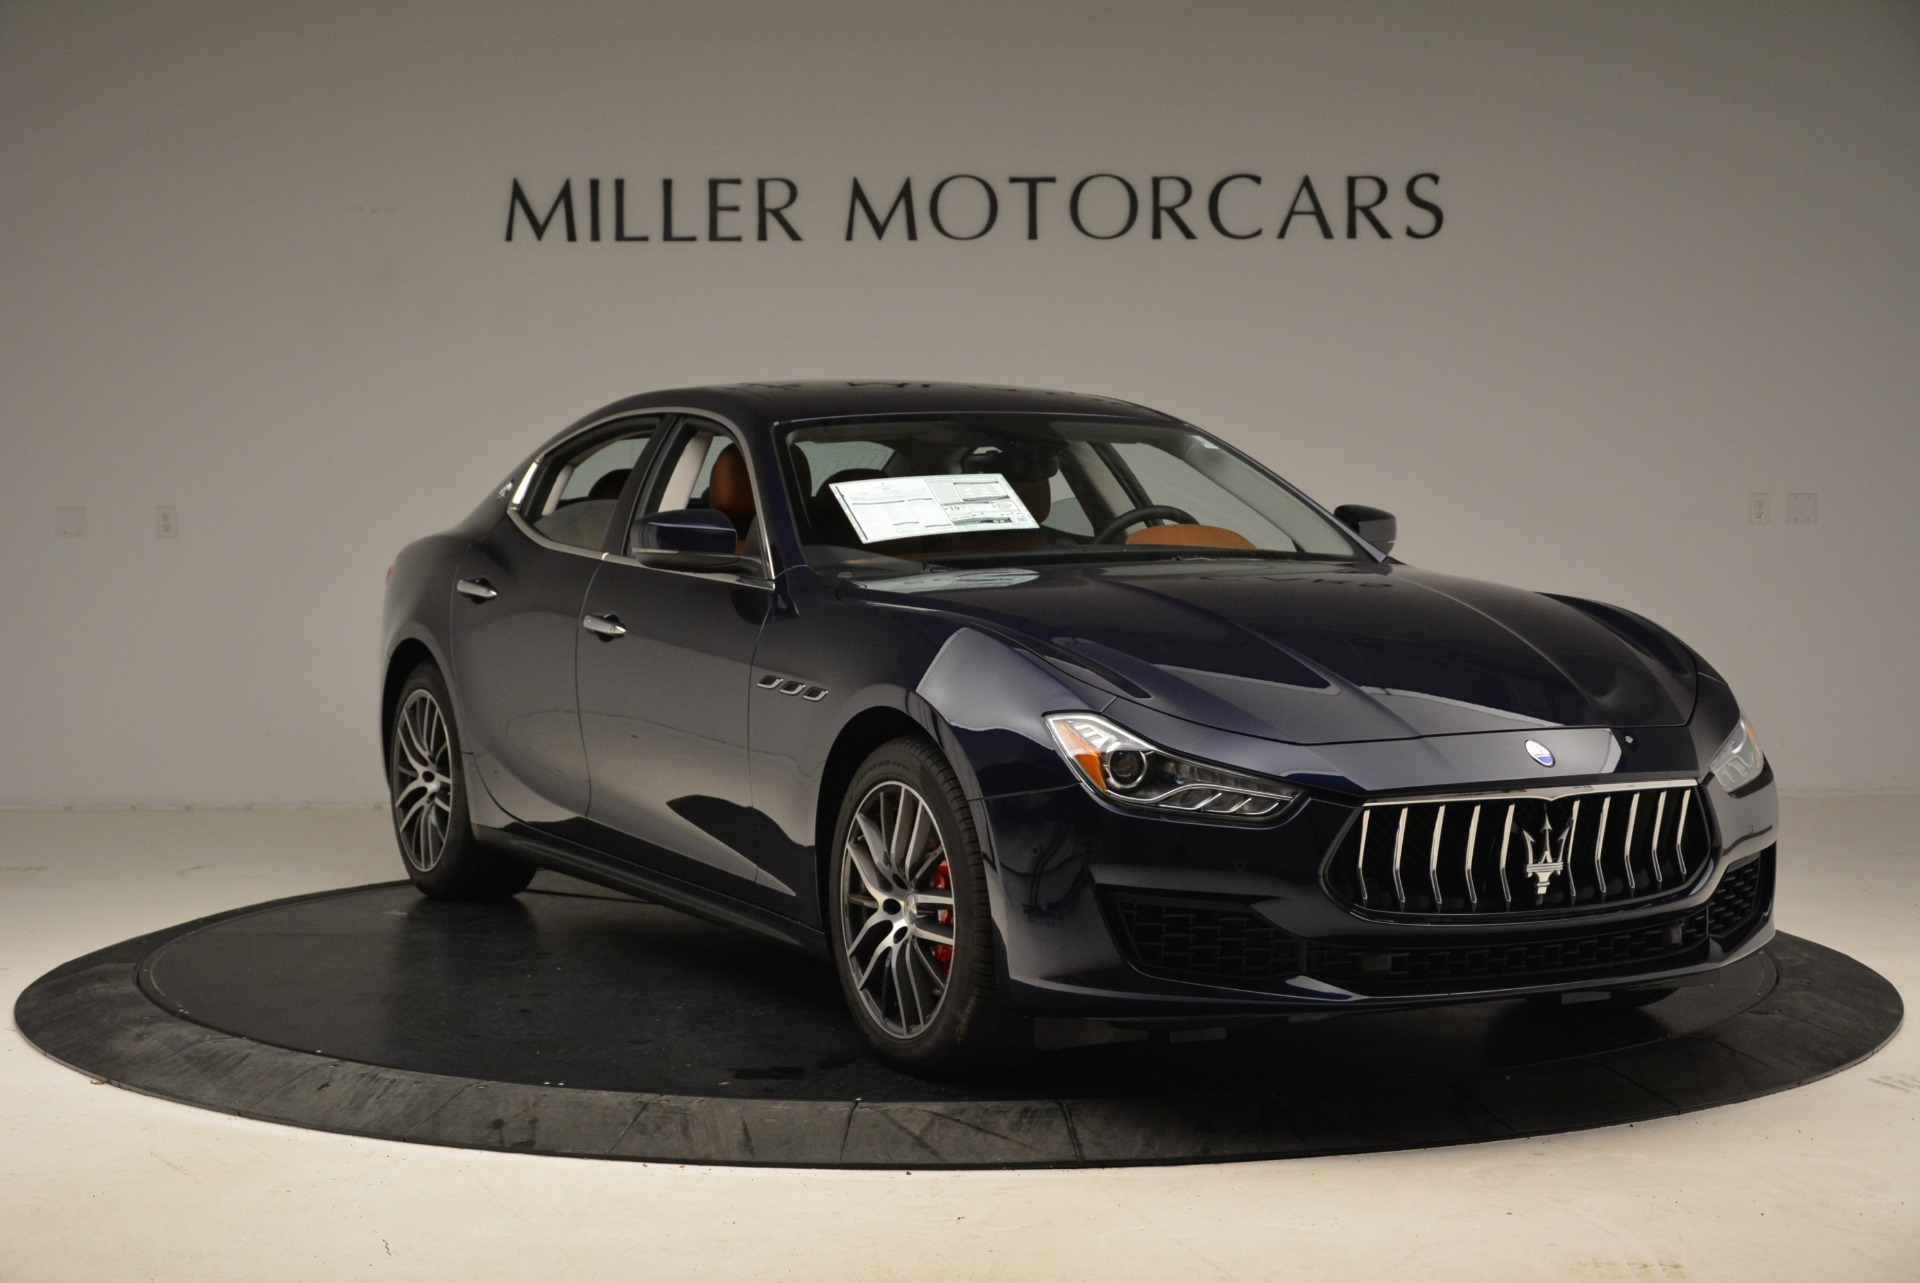 New 2019 Maserati Ghibli S Q4 For Sale In Greenwich, CT 3016_p11